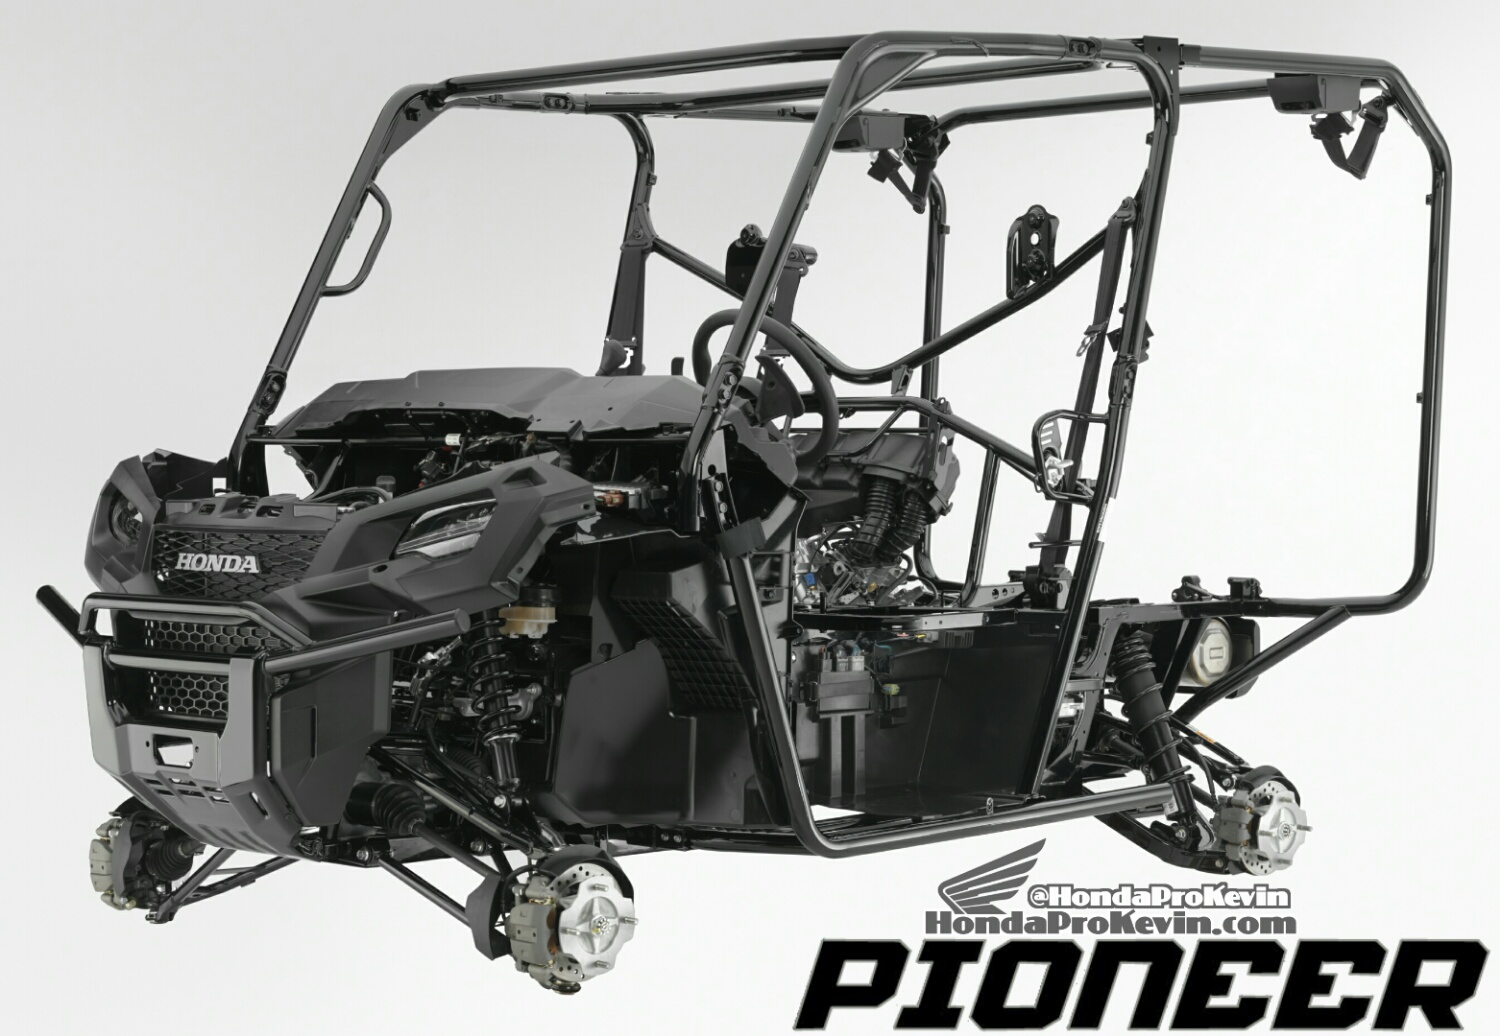 2017 Honda Pioneer 1000-5 Frame / Chassis - Review - Side by Side / UTV / SxS / Utility Vehicle